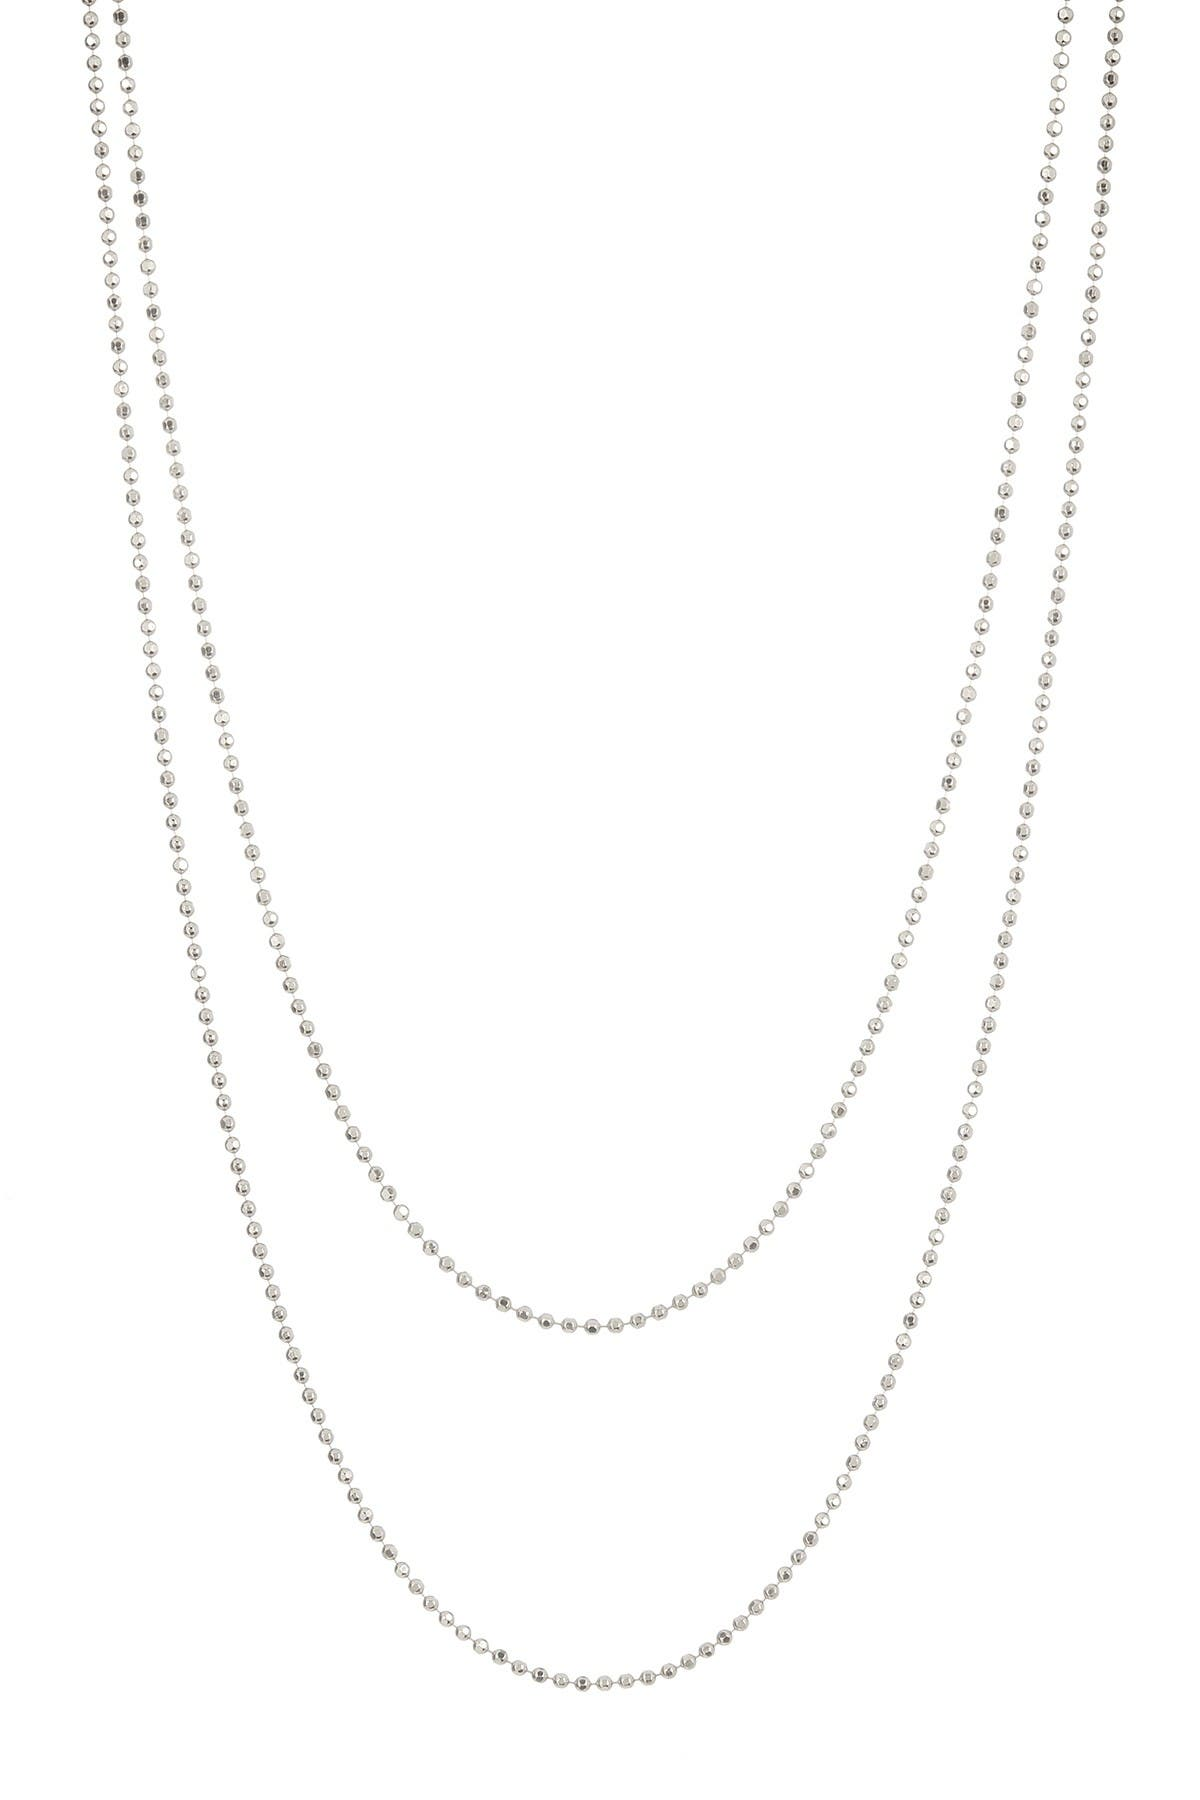 Image of Argento Vivo Sterling Silver Beaded Chain Link Necklace - Set of 2